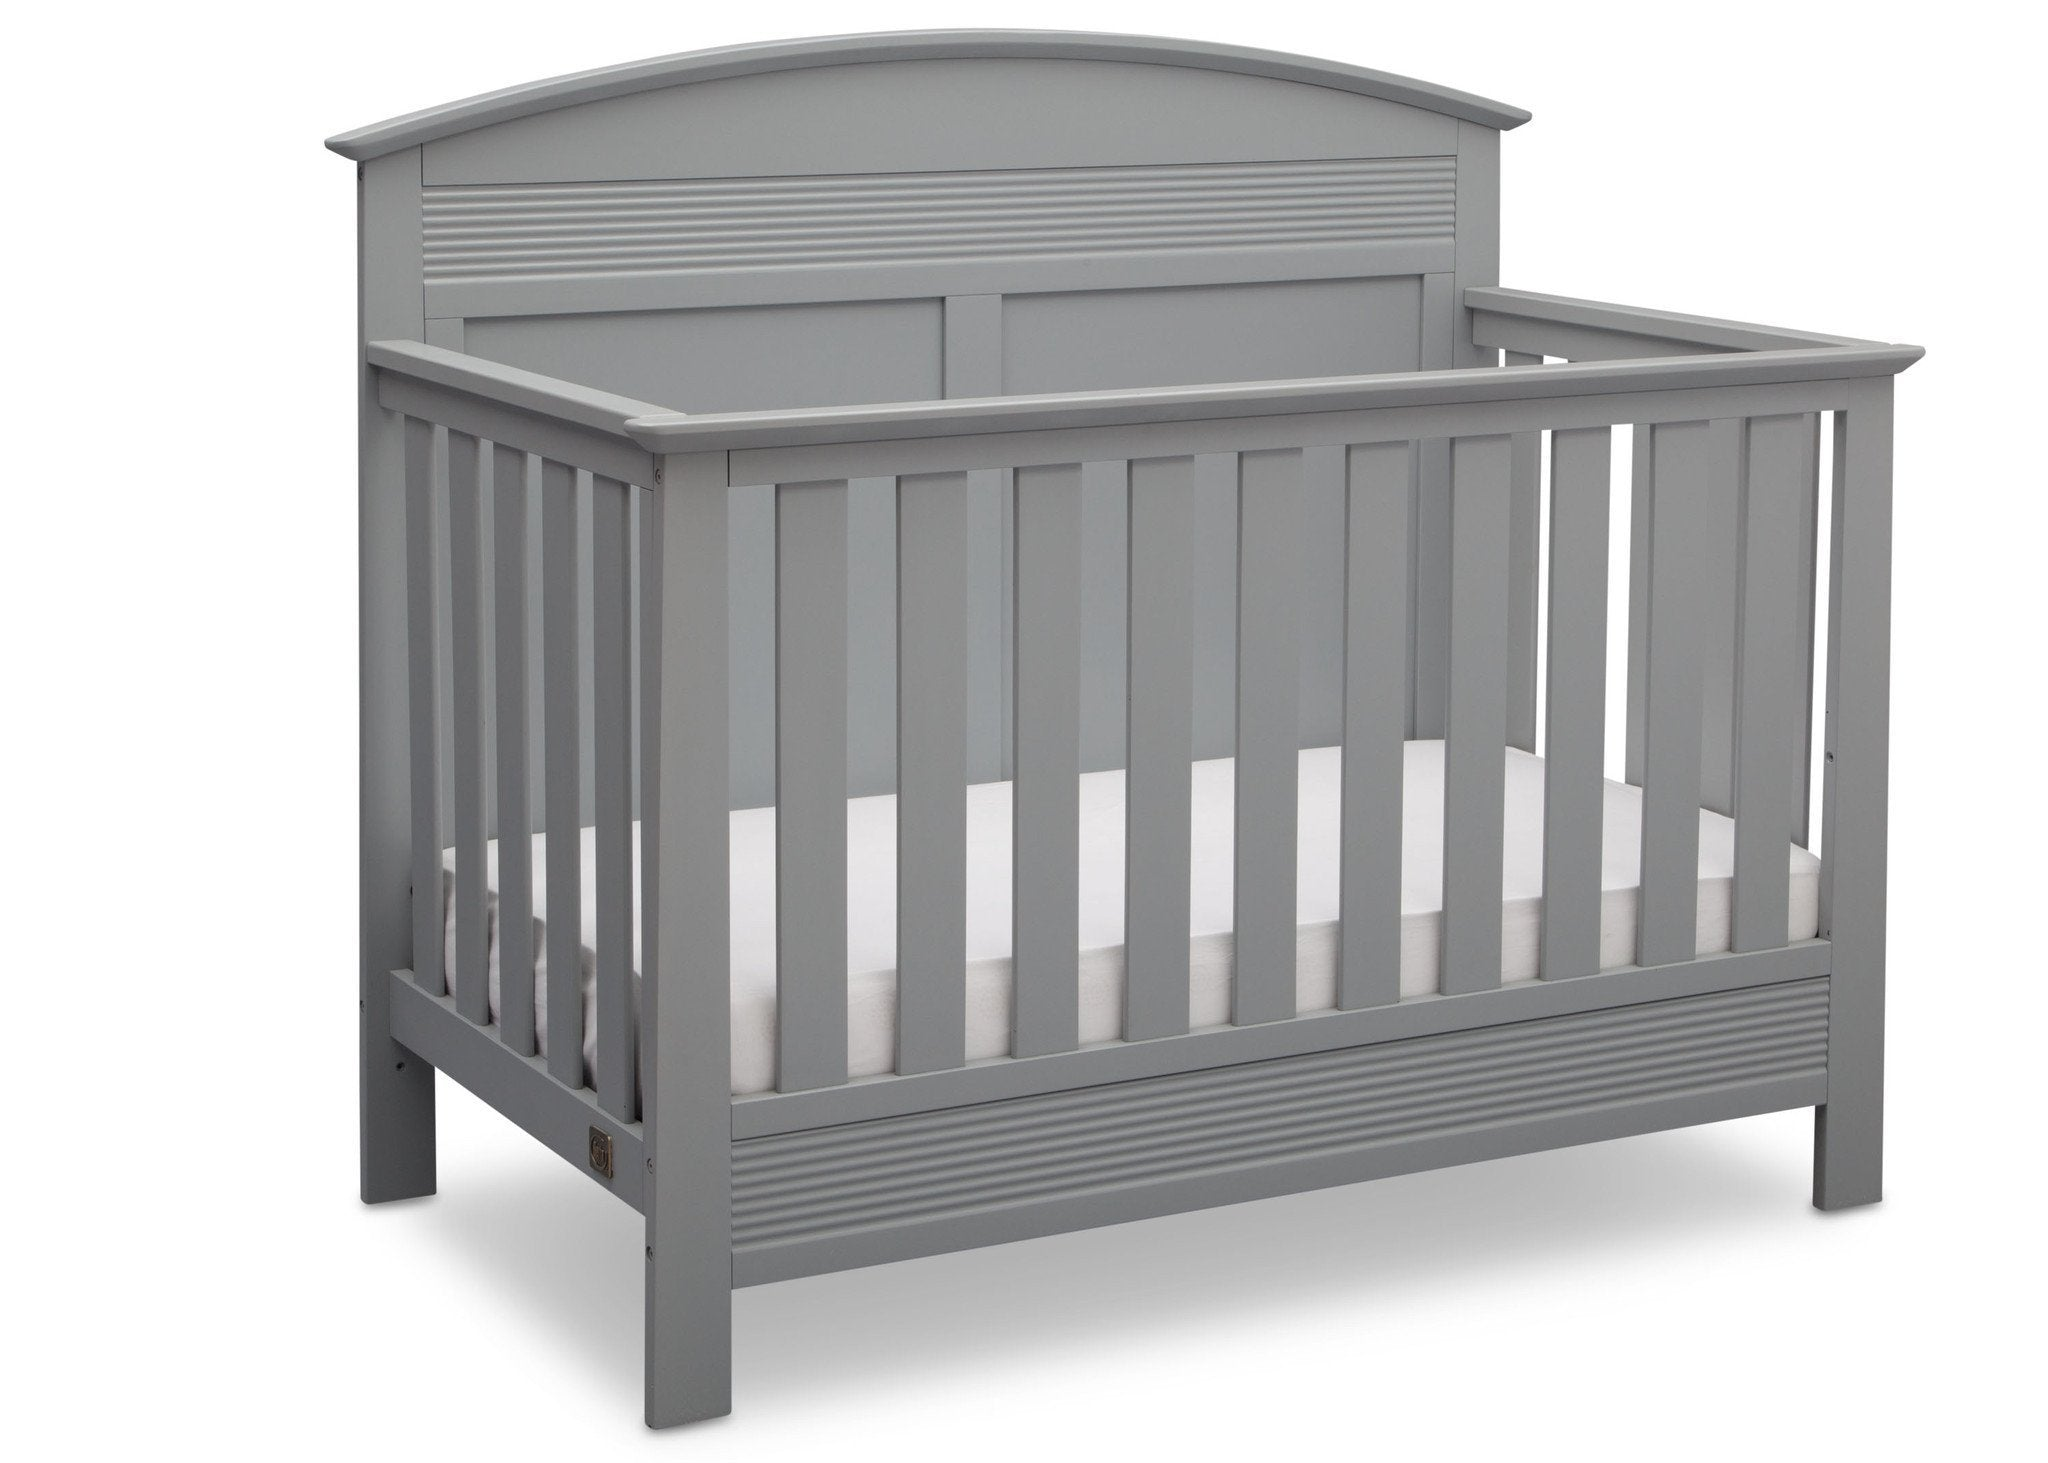 Serta Grey (026) Ashland 4-in-1 Convertible Crib, Right Crib View a2a